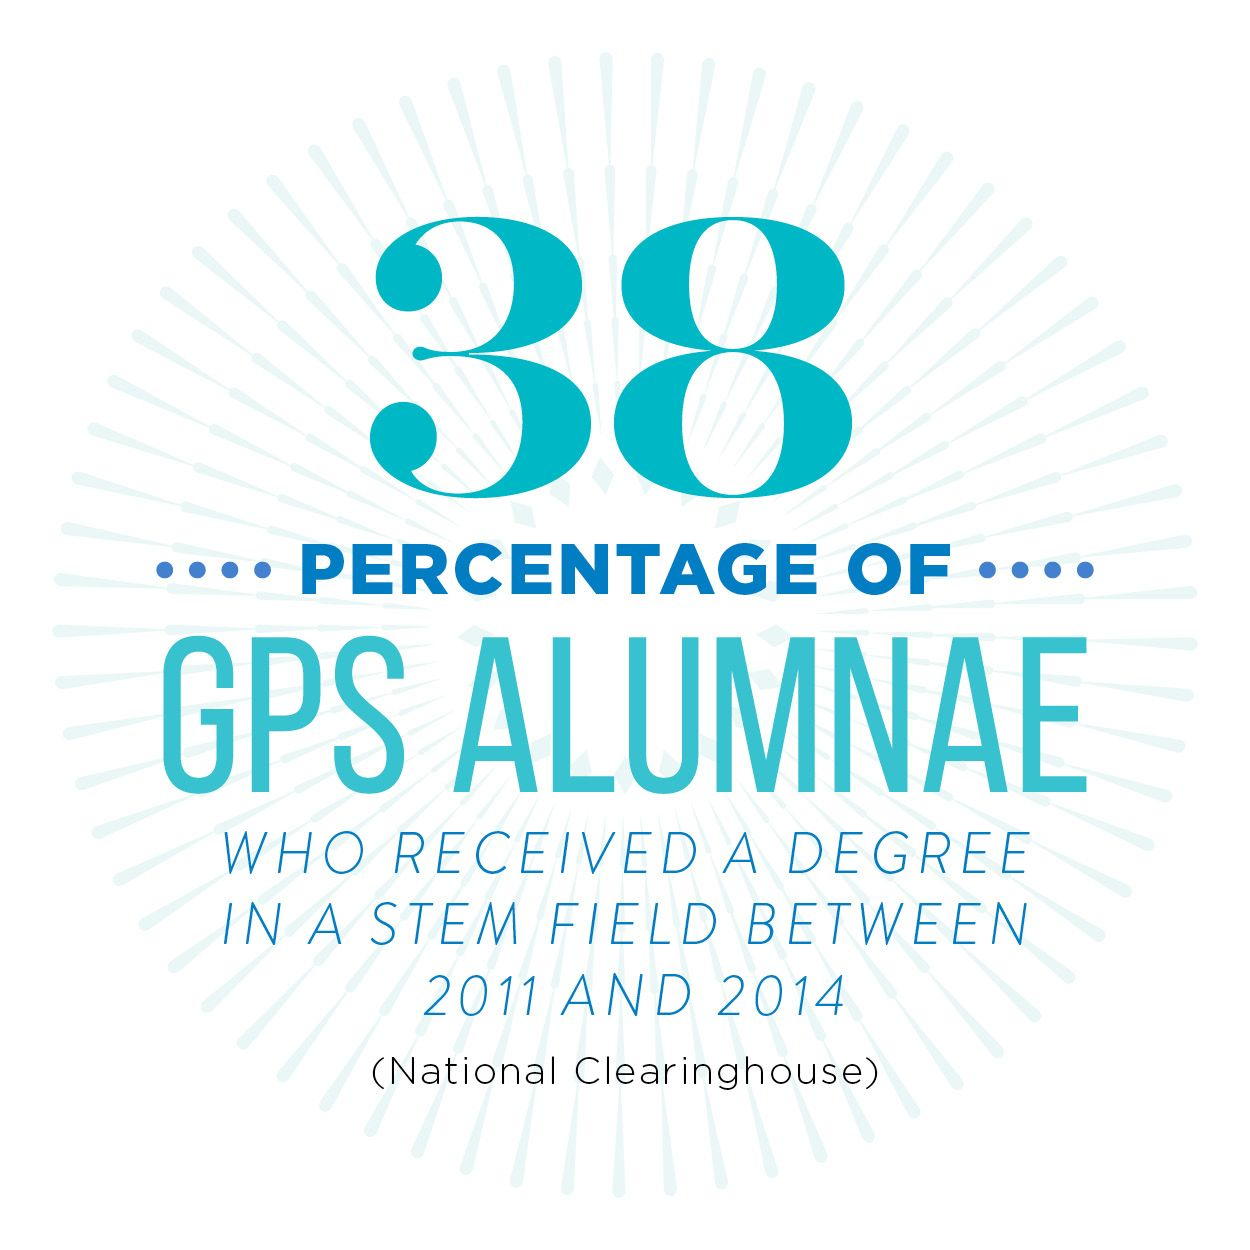 38 percentage of GPS alumnae who received a degree in a STEM field between 2011 and 2014 (national clearinghouse)